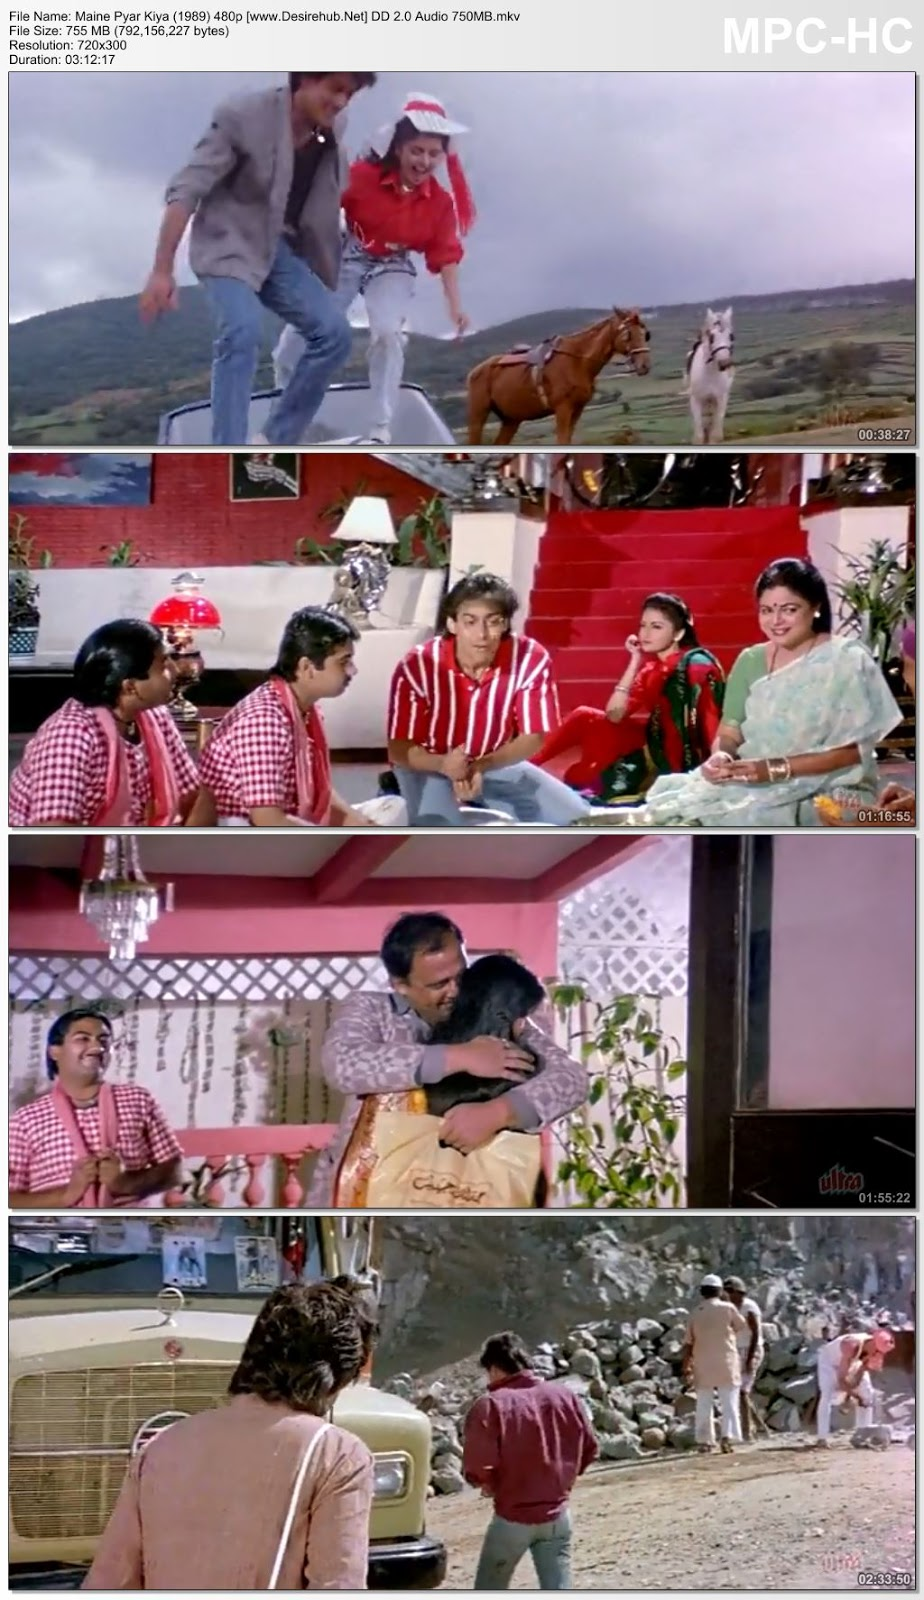 Maine Pyar Kiya (1989) Hindi 480p BRRip DD 2.0 Audio – 750MB Desirehub